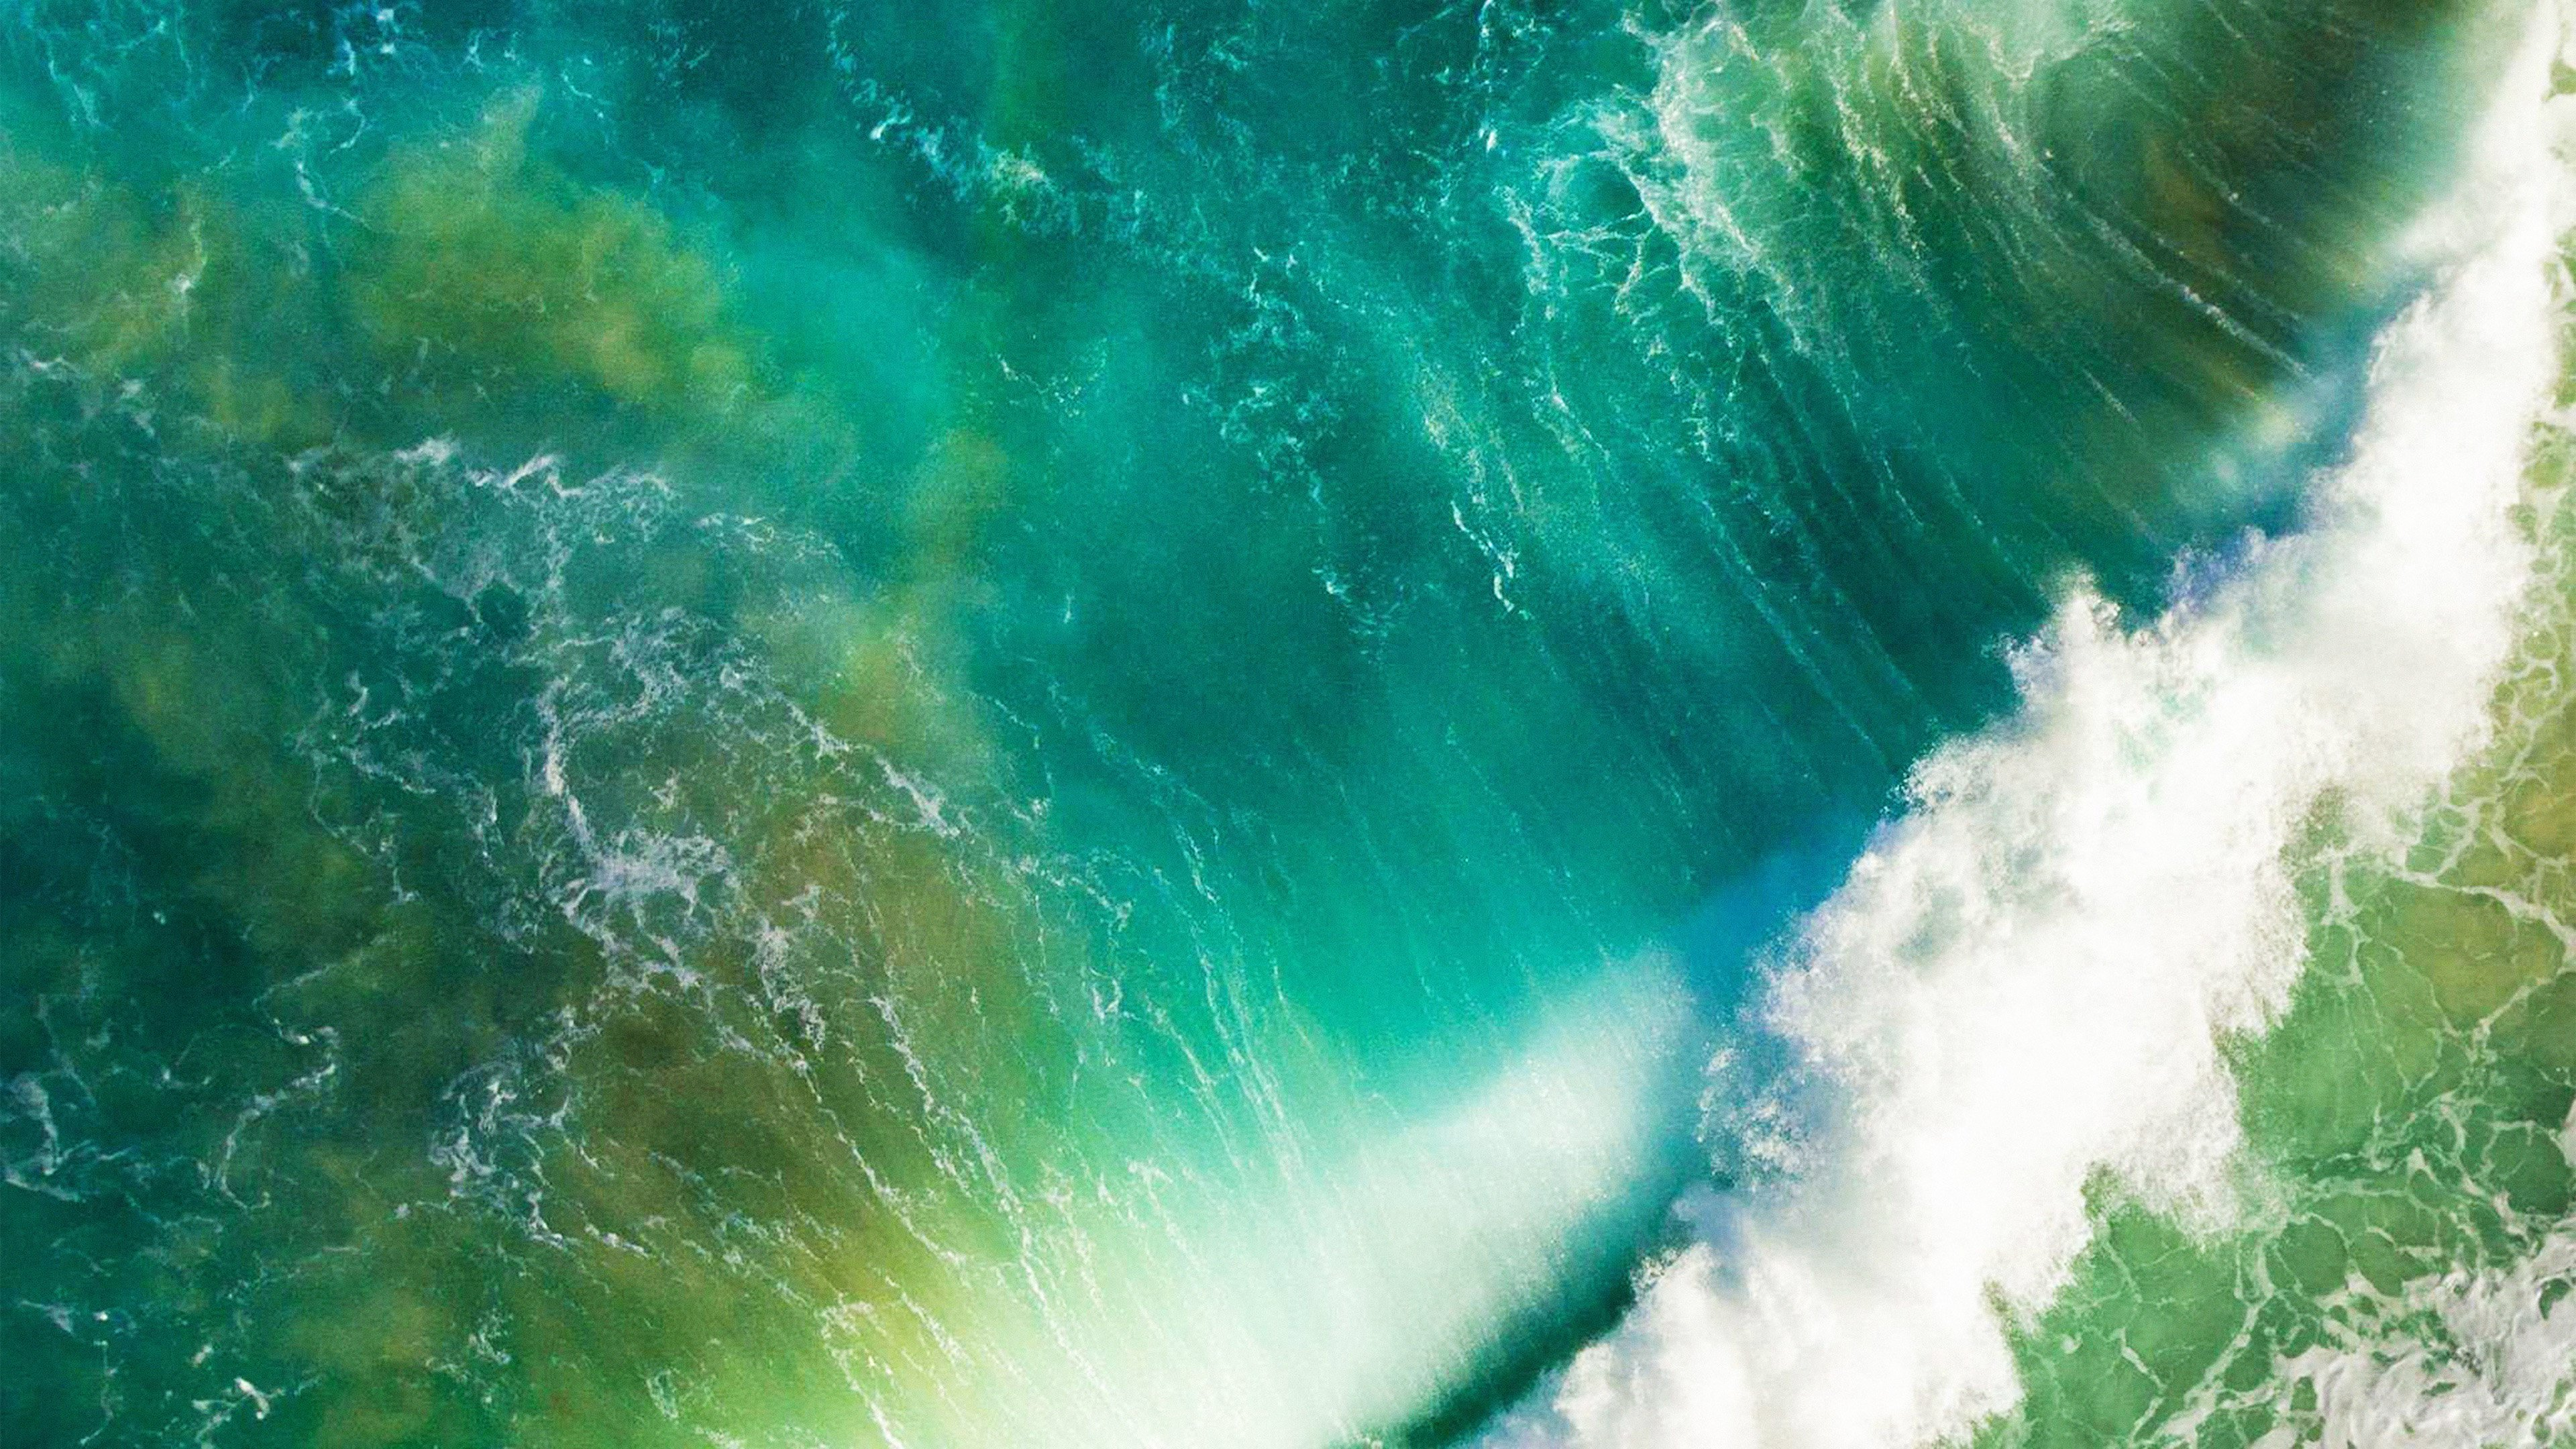 papers.co-at05-ios10-apple-iphone7-wave-waterfall-official-art-illustration-35-3840x2160-4k-wallpape